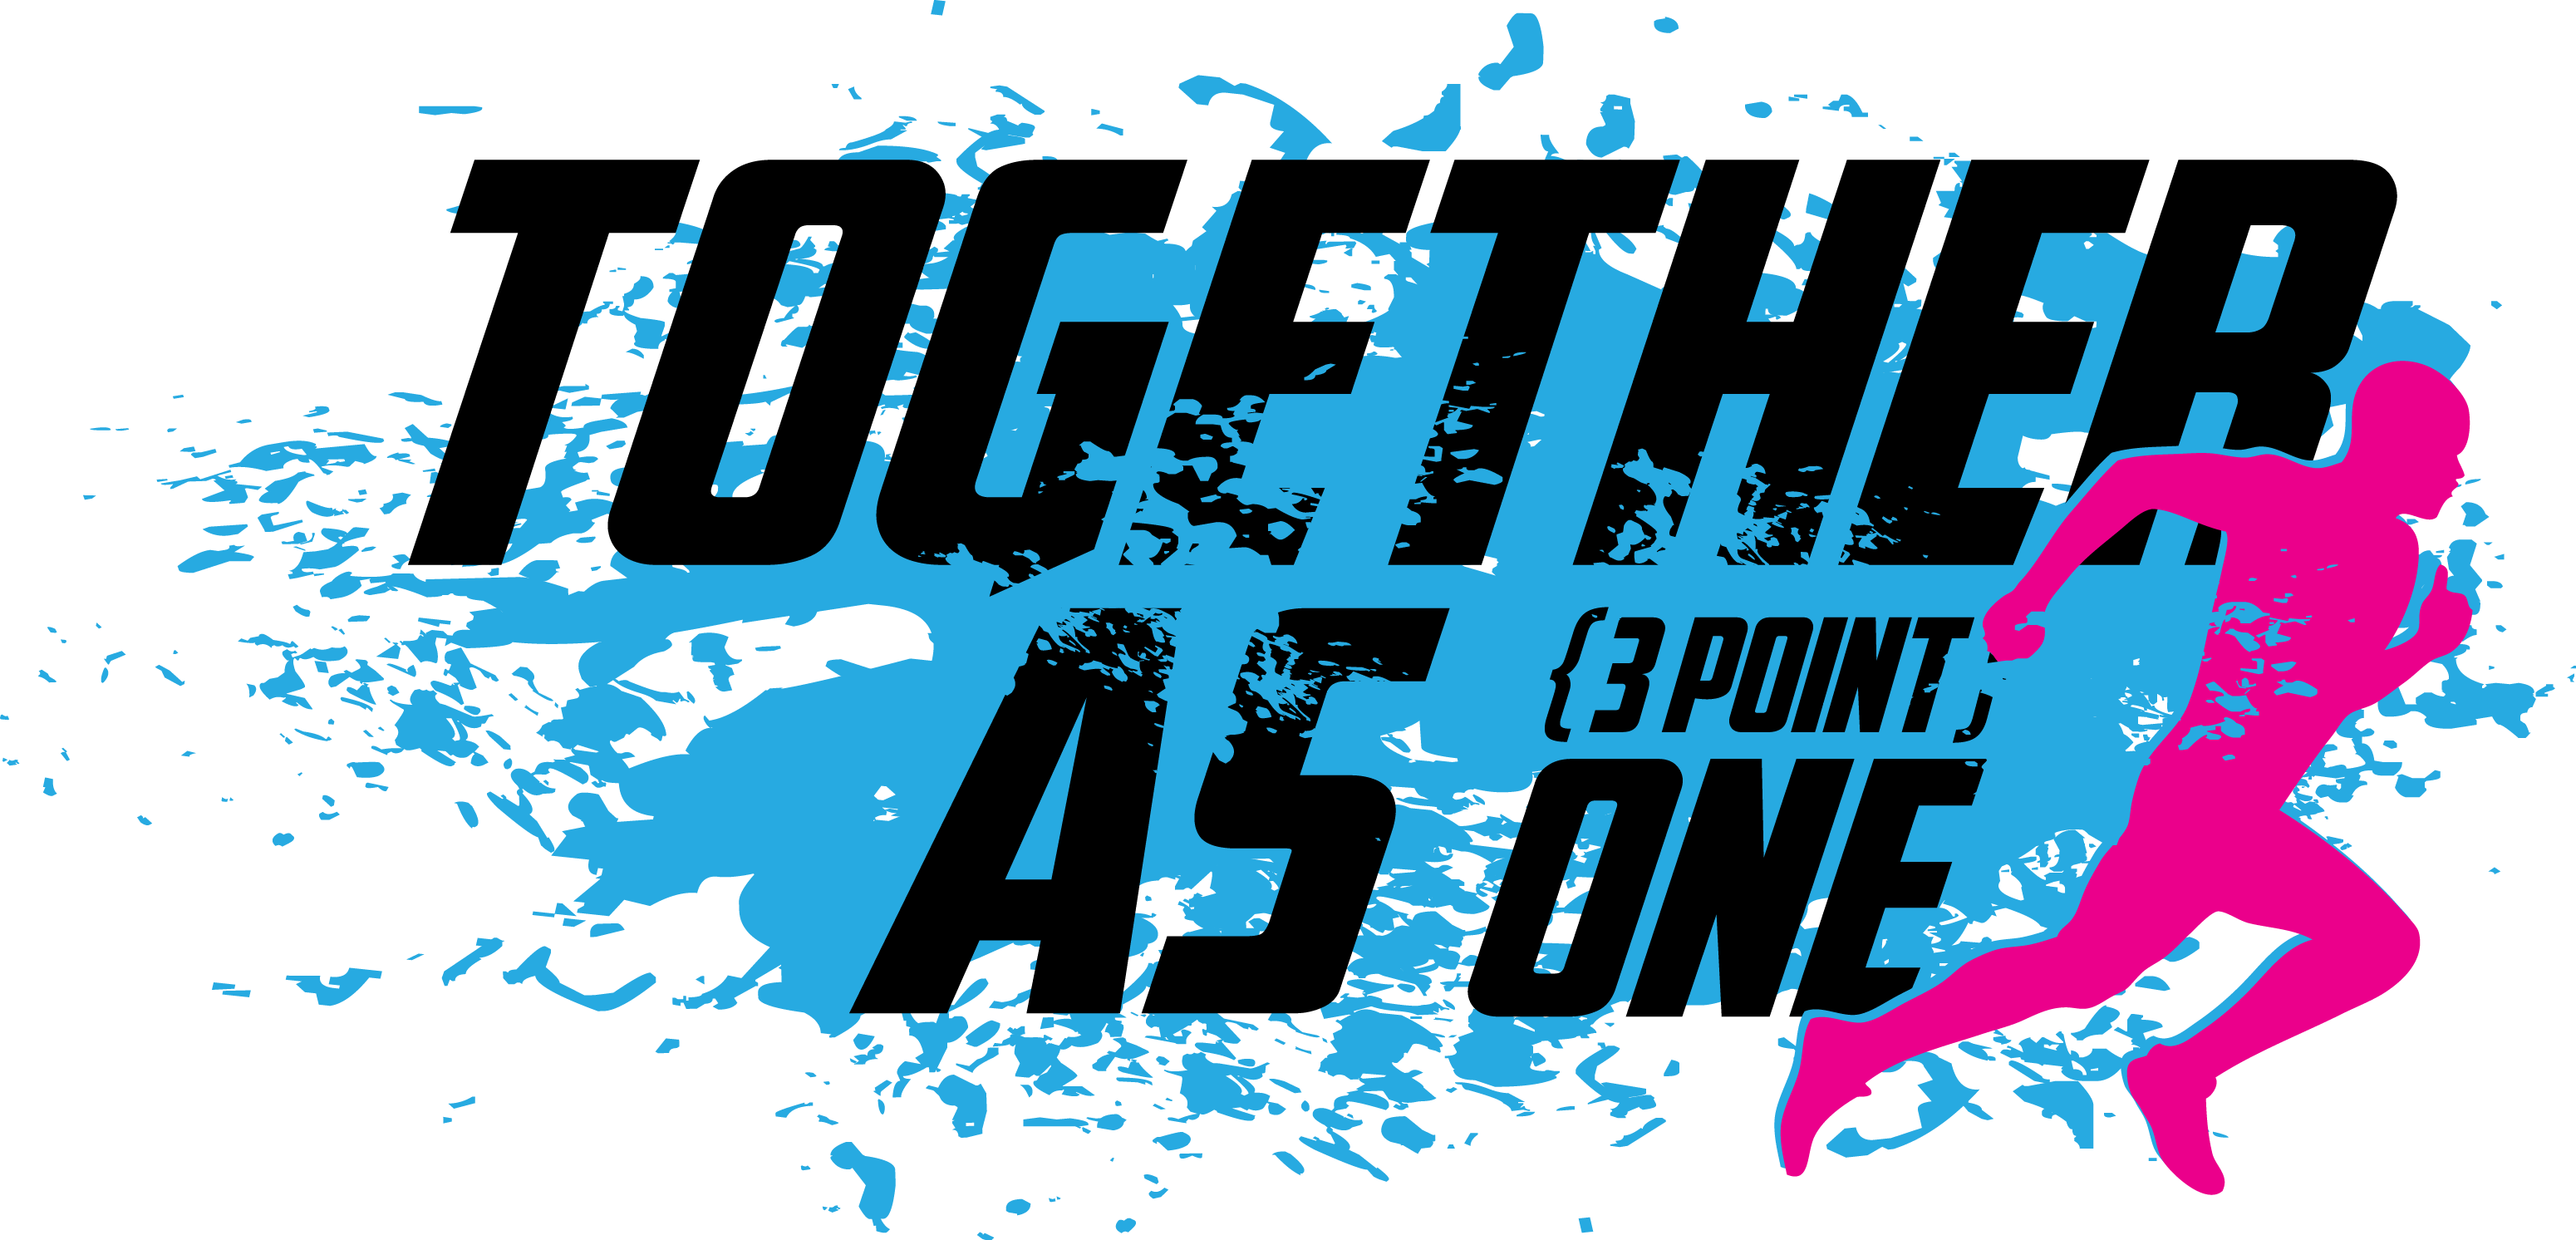 Sponsor Together As {3Point} One